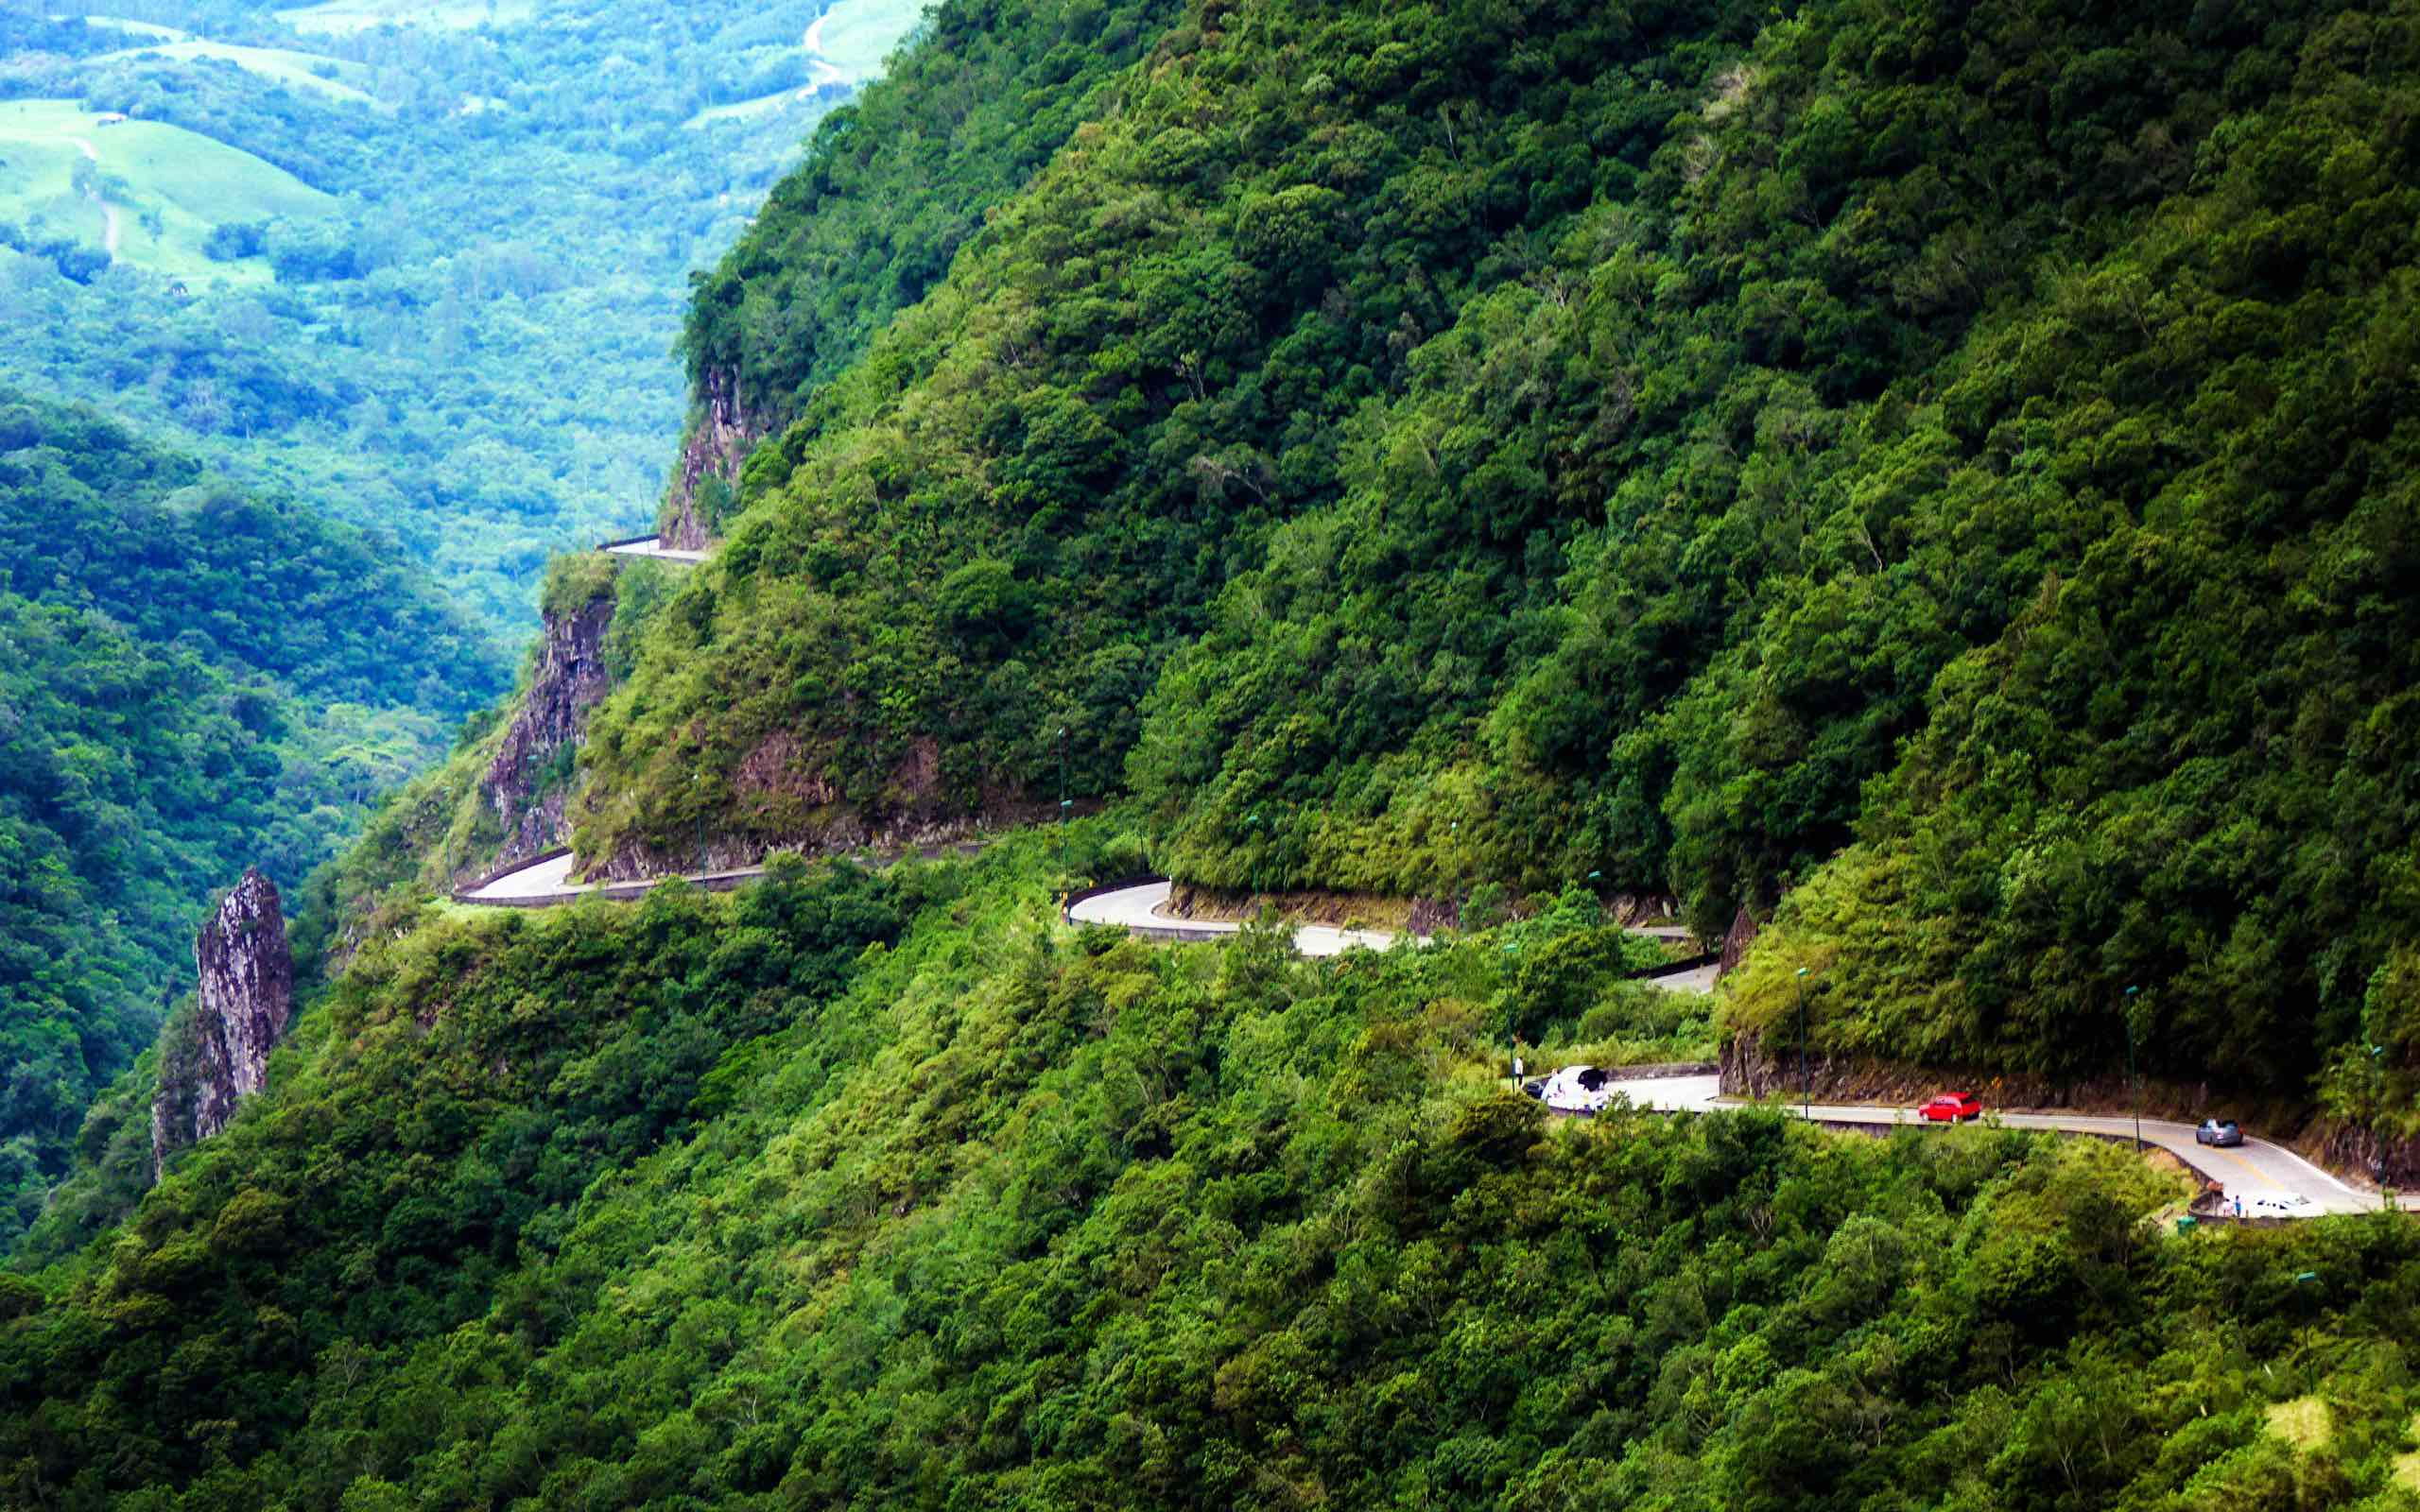 2. SC-438 (Serra do Rio do Rastro Road), Brazil